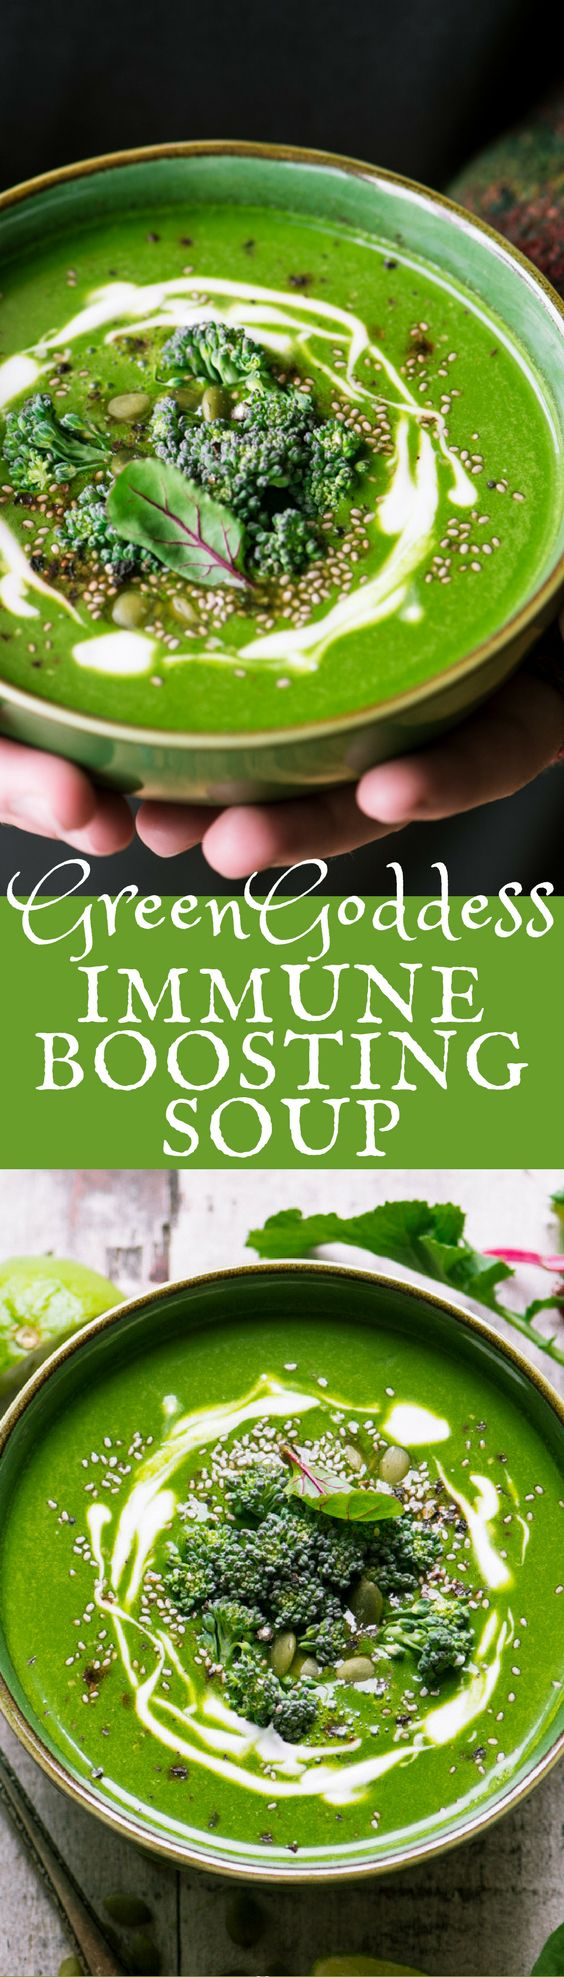 Green Goddess Immune Boosting Soup ~ this nourishing soup is the cold weather equivalent to your power smoothie.  This brilliant soup is packed with everything you need to get through cold and flu season without so much as a sniffle. #soup #healthysoup #immuneboost #detoxsoup #detox #greensoup #superfoods #greens #vegan #vegetarian #homeremedy #fluremedy #coldremedy #ad